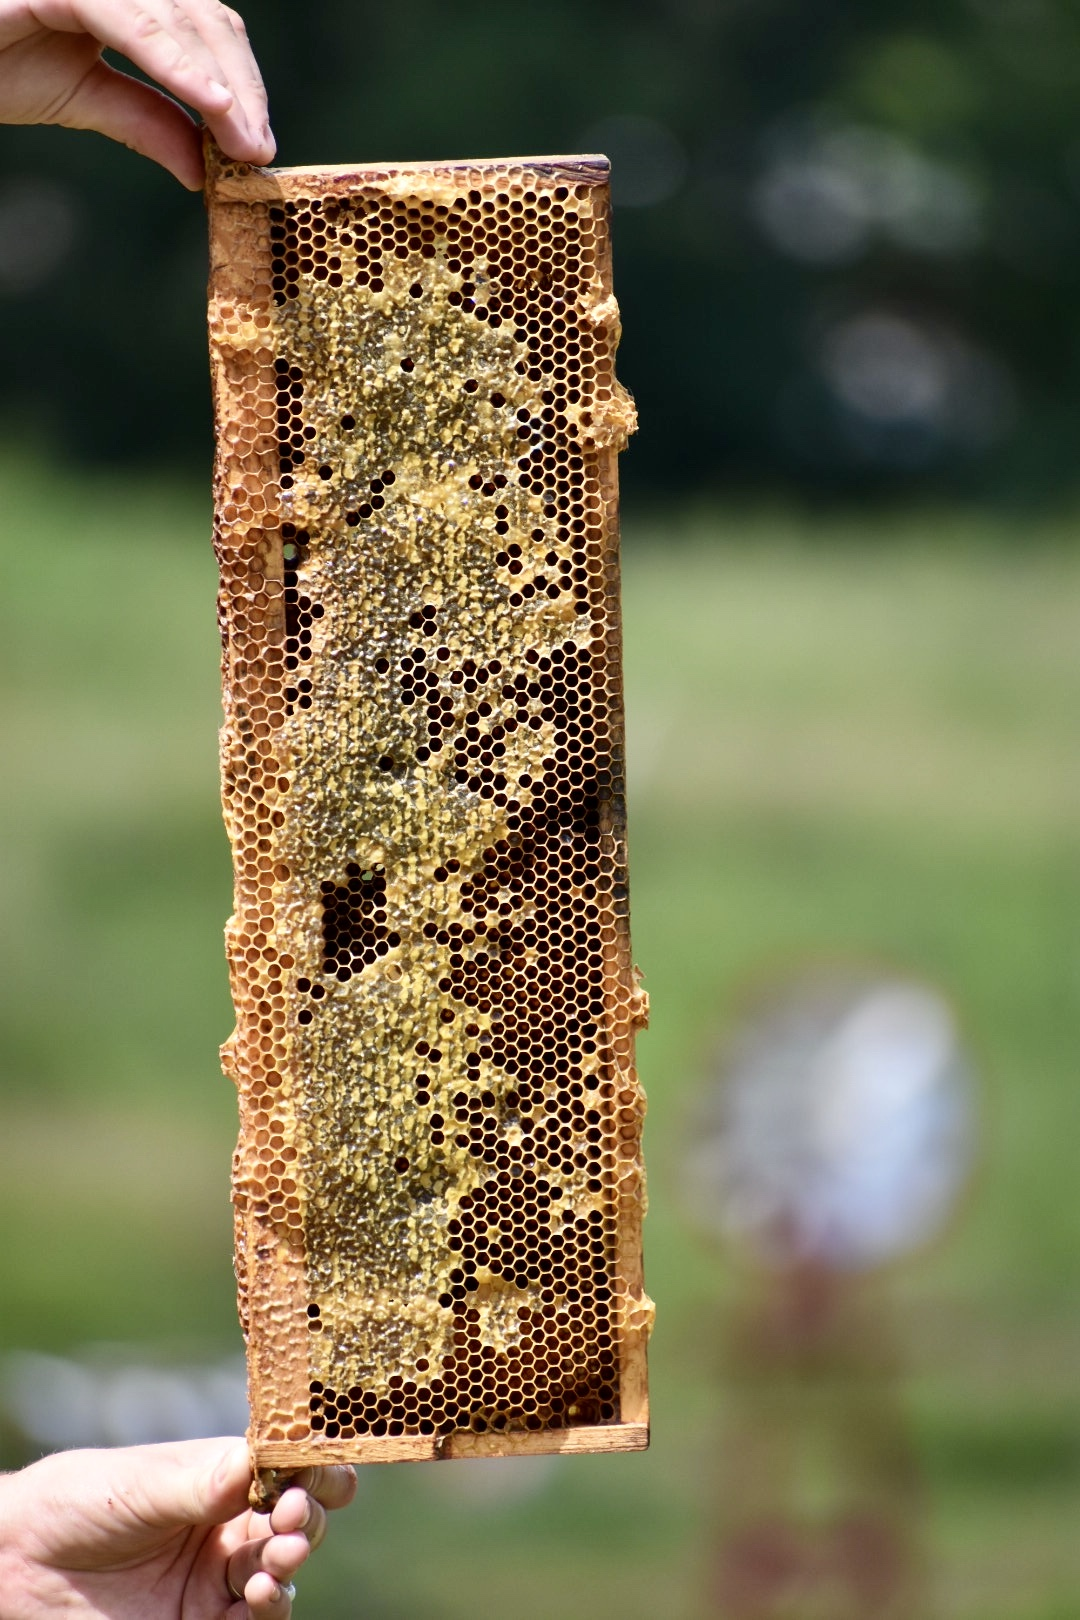 Frame Host A Hive